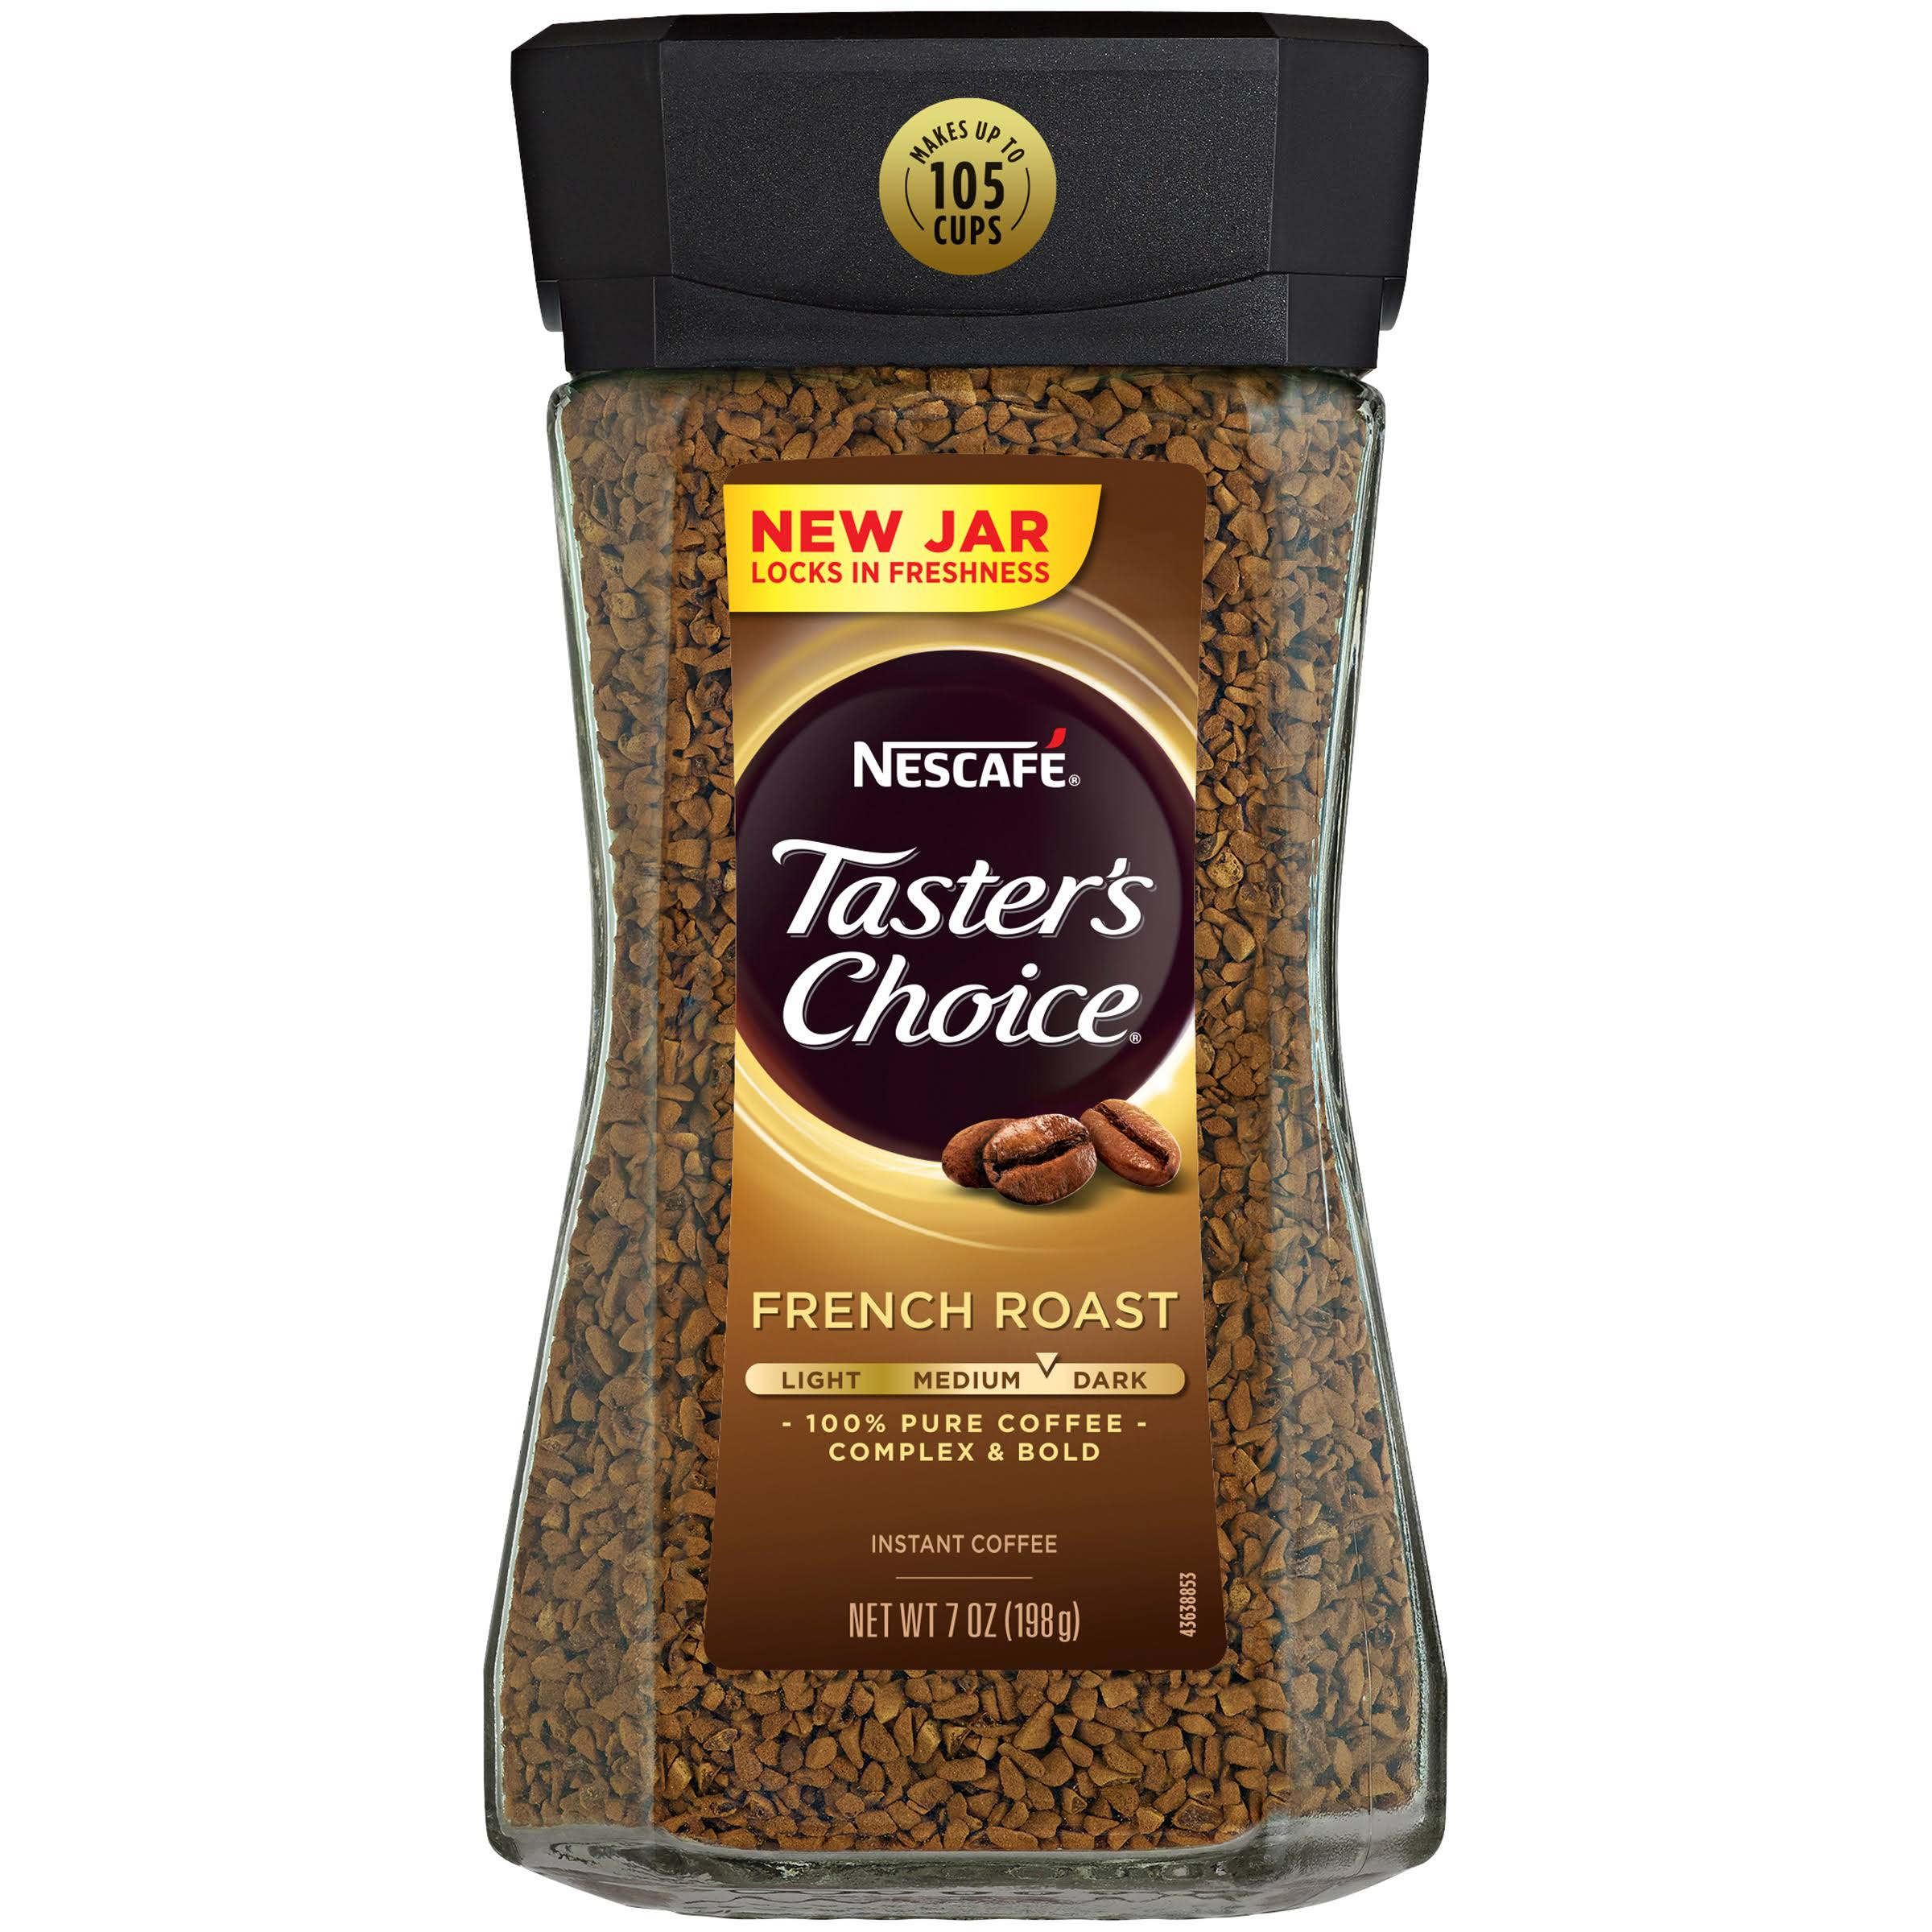 Nescafe Taster's Choice Instant Coffee - French Roast, 7oz